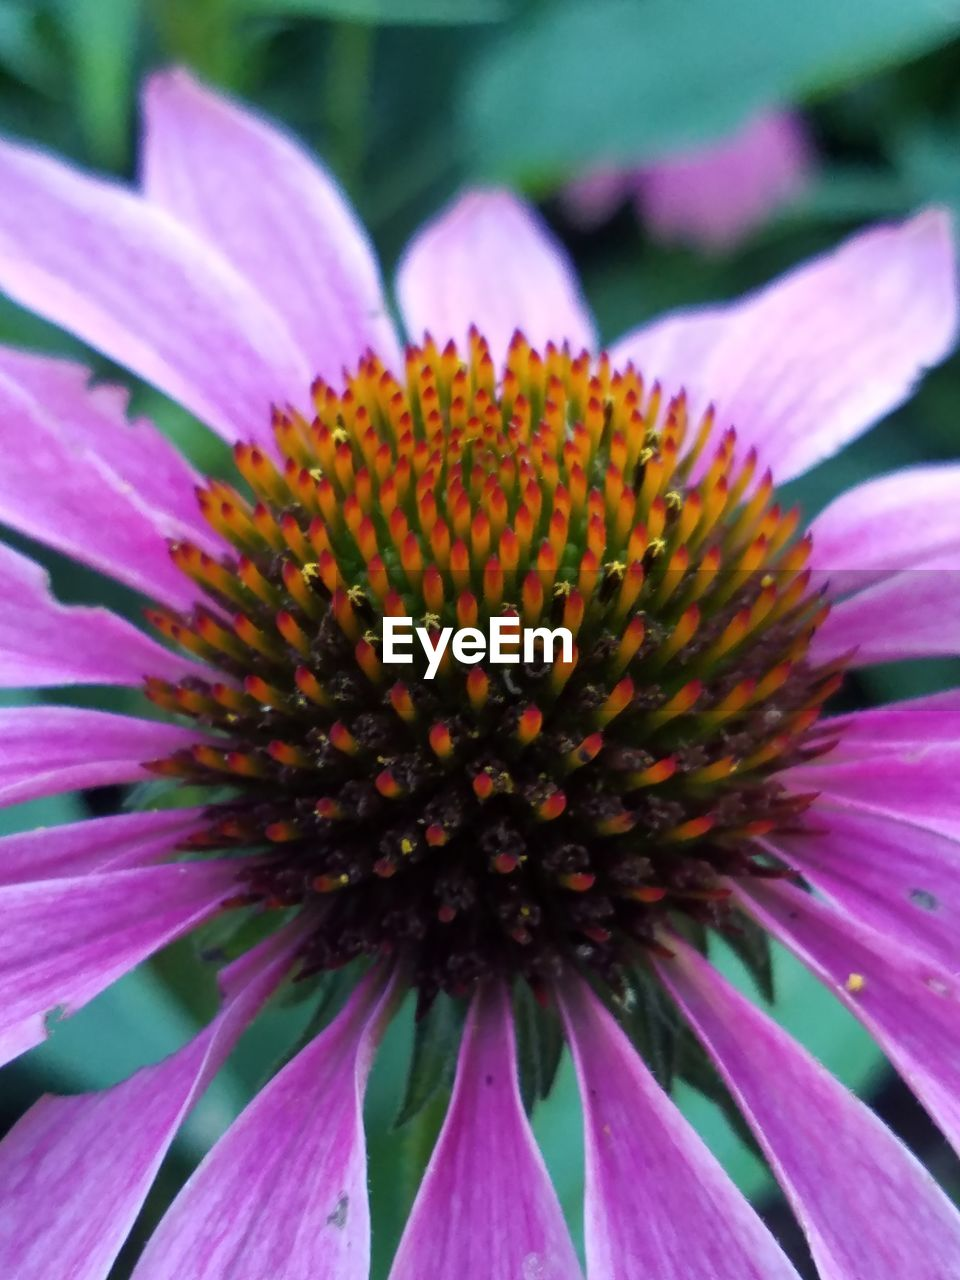 flower, fragility, petal, growth, beauty in nature, flower head, nature, pollen, freshness, eastern purple coneflower, blooming, coneflower, plant, purple, outdoors, day, no people, close-up